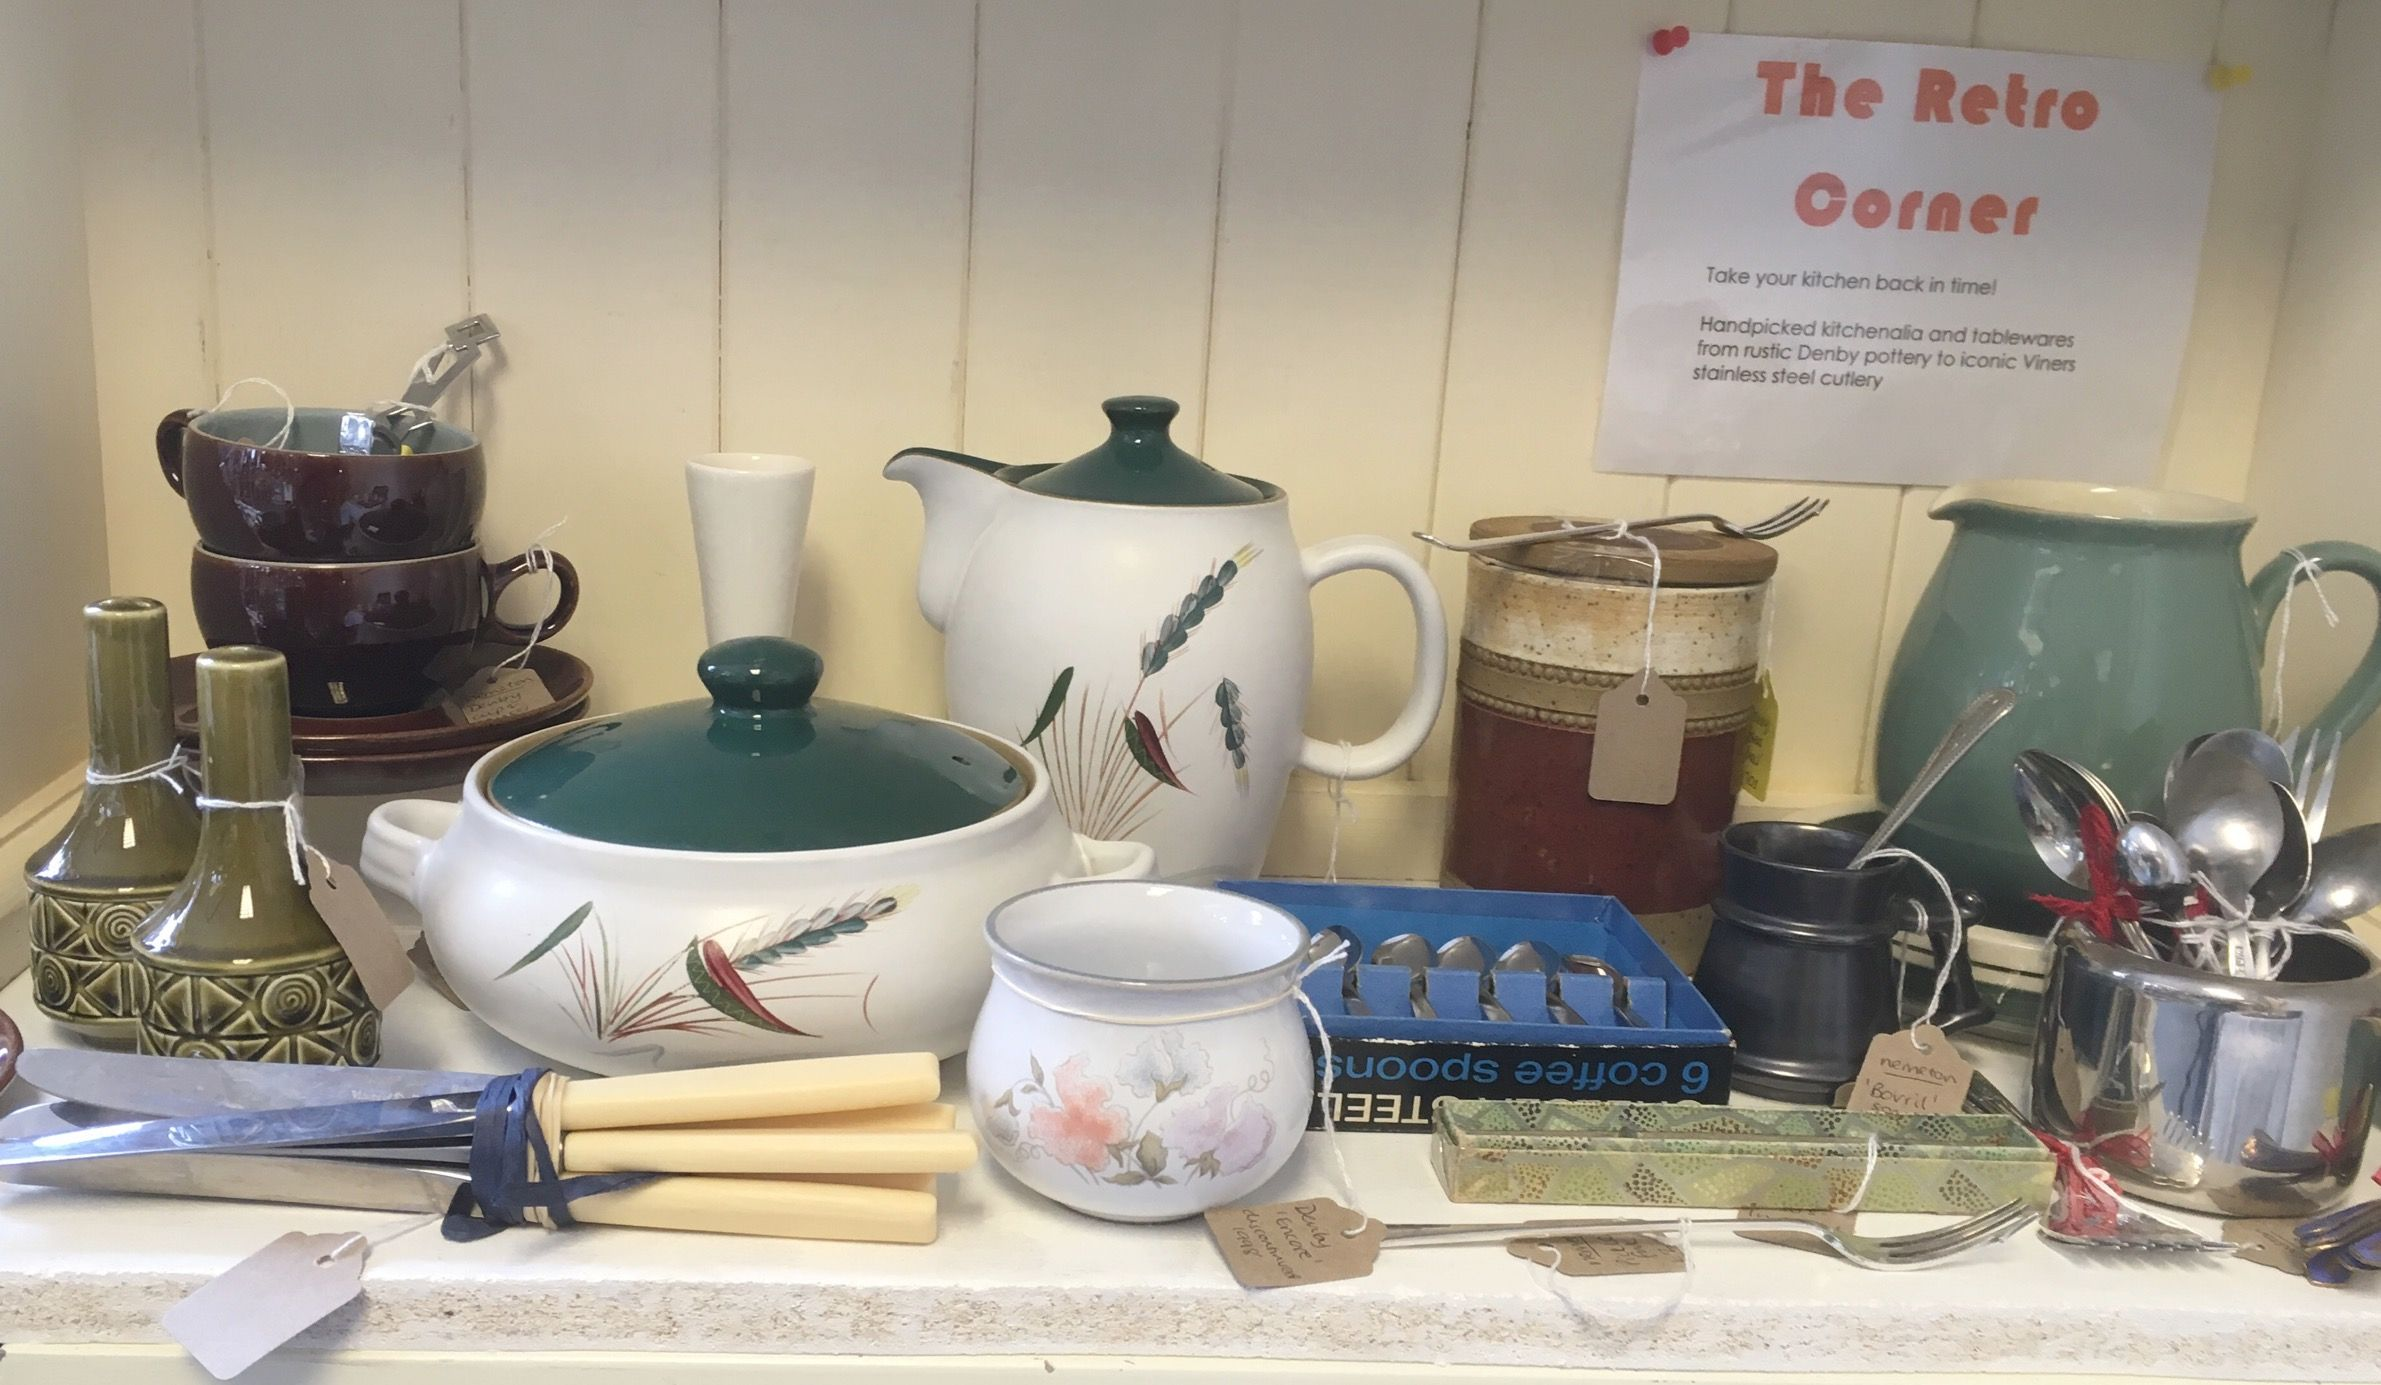 My Retro Corner has some lovely discontinued Denby pottery and Viners cutlery & My Retro Corner has some lovely discontinued Denby pottery and ...